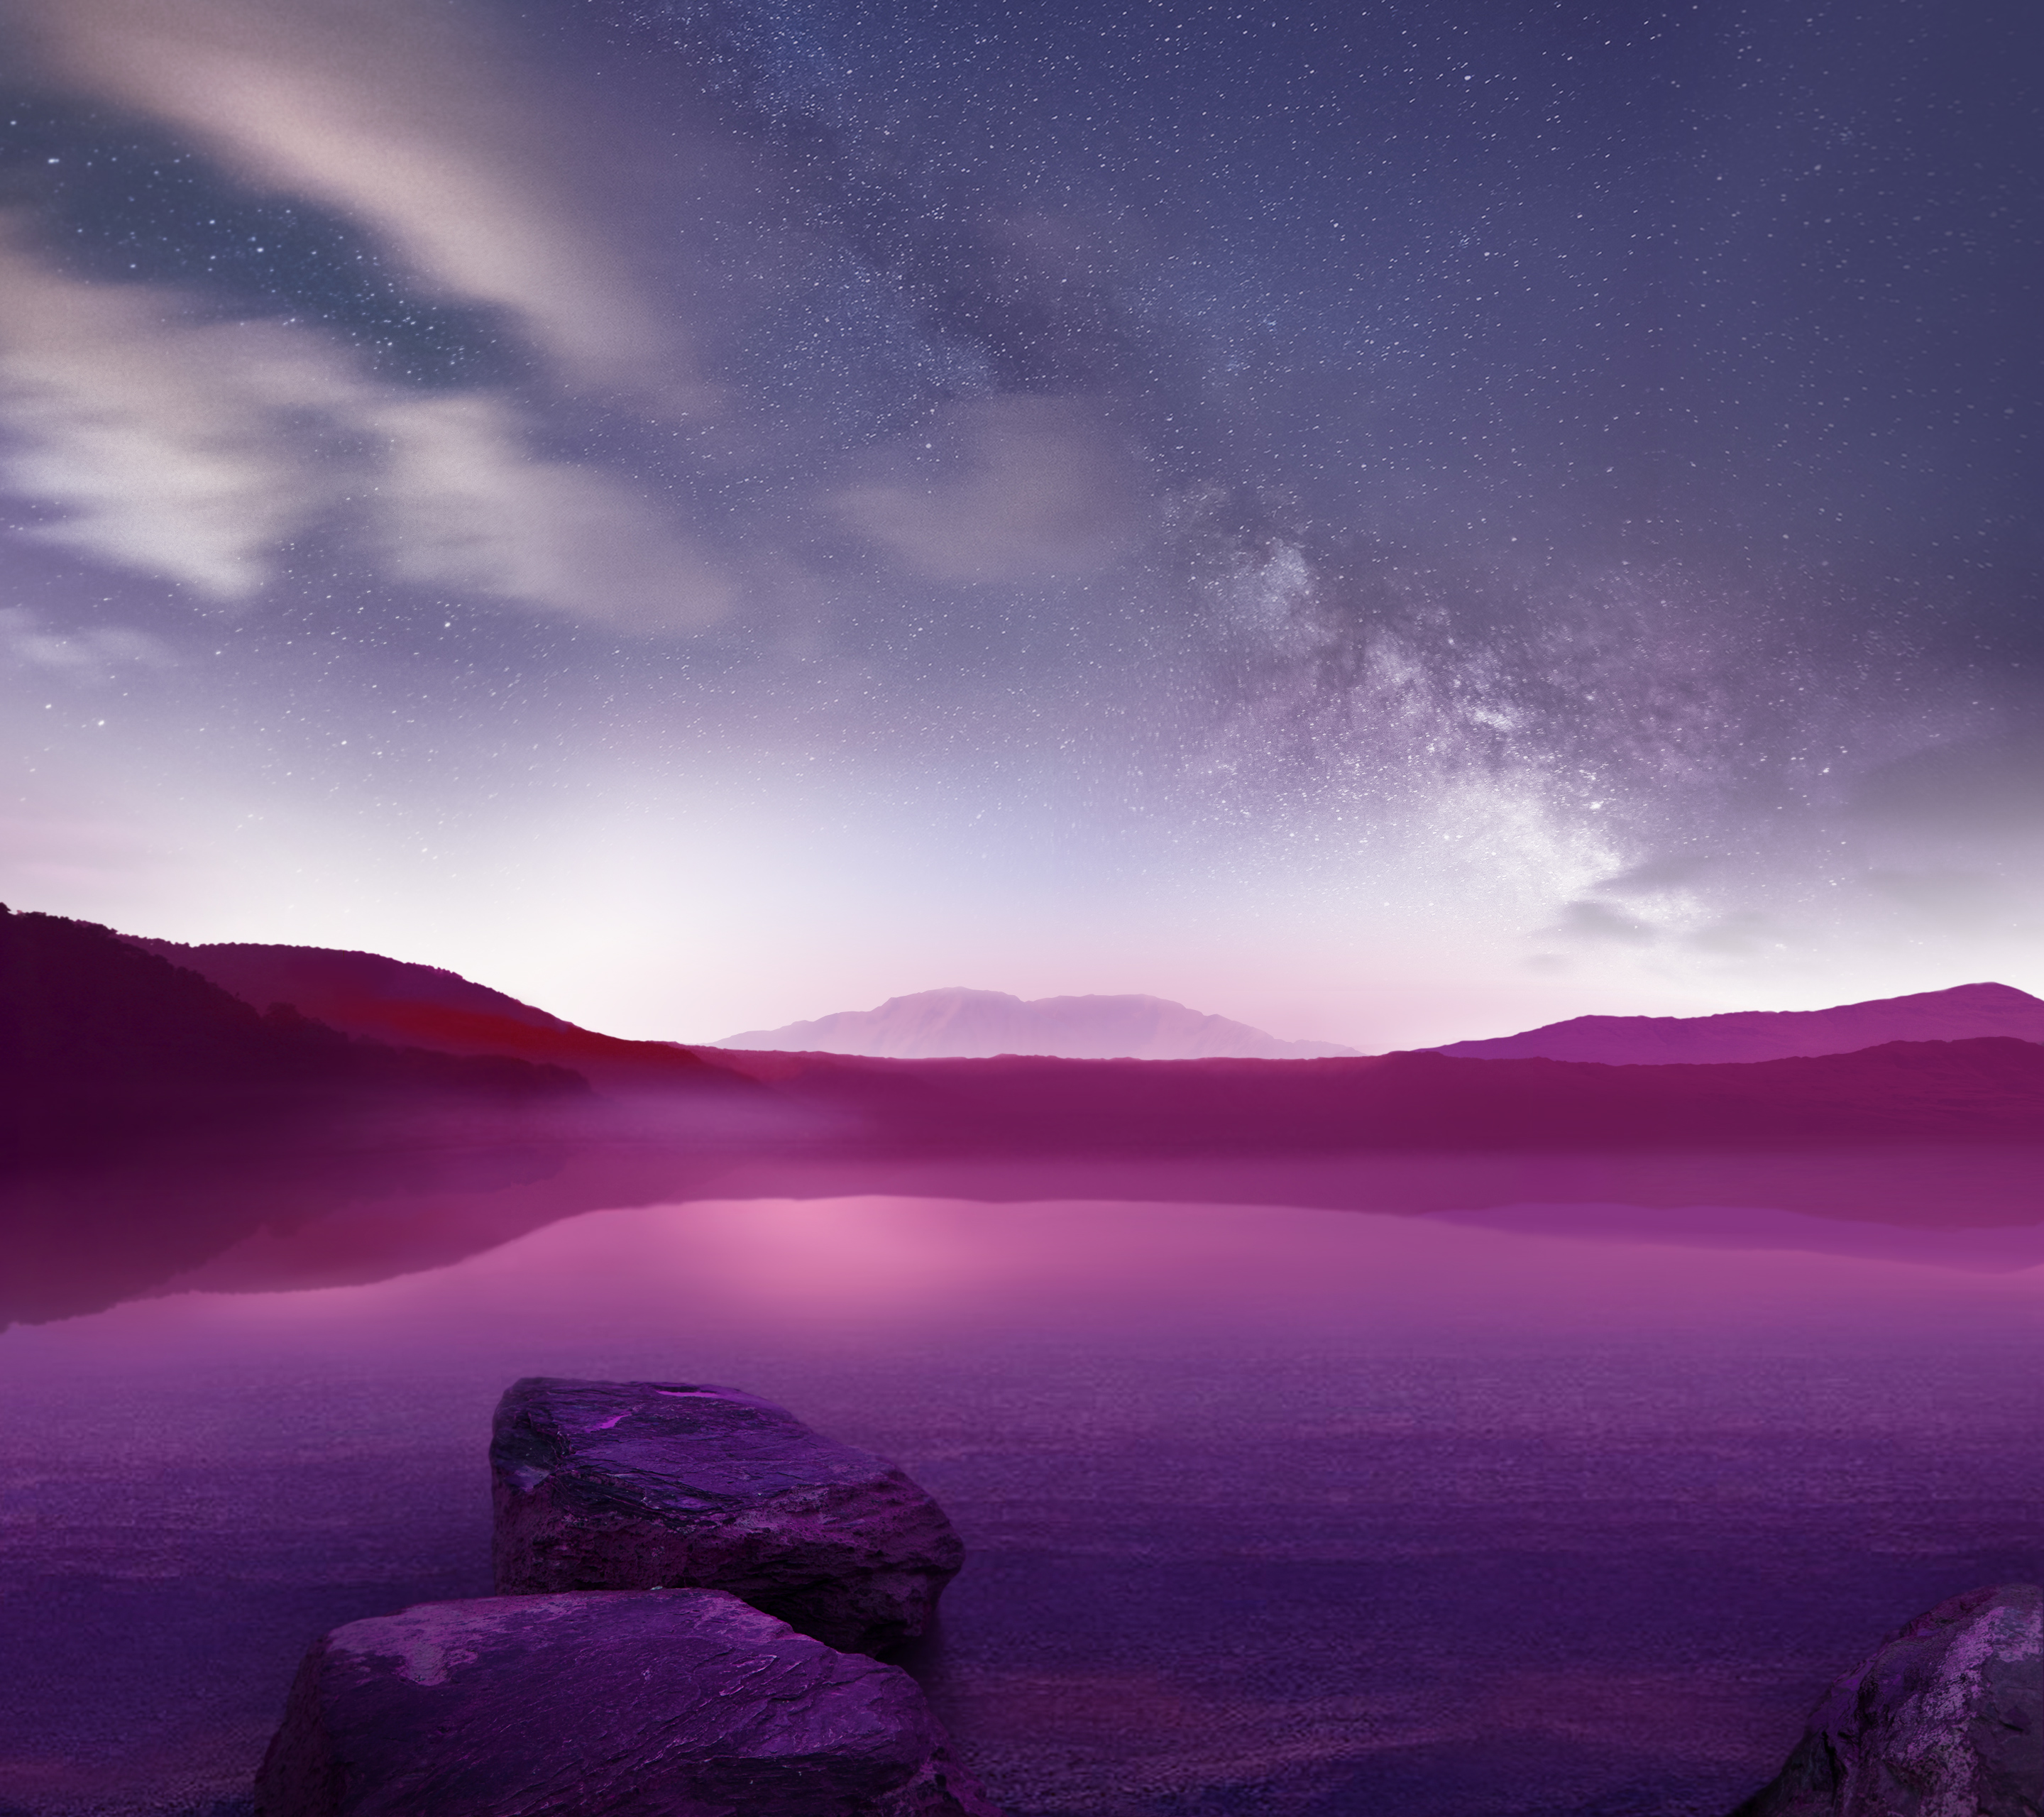 Download these LG G3 wallpapers for your phone Android Games 2880x2560